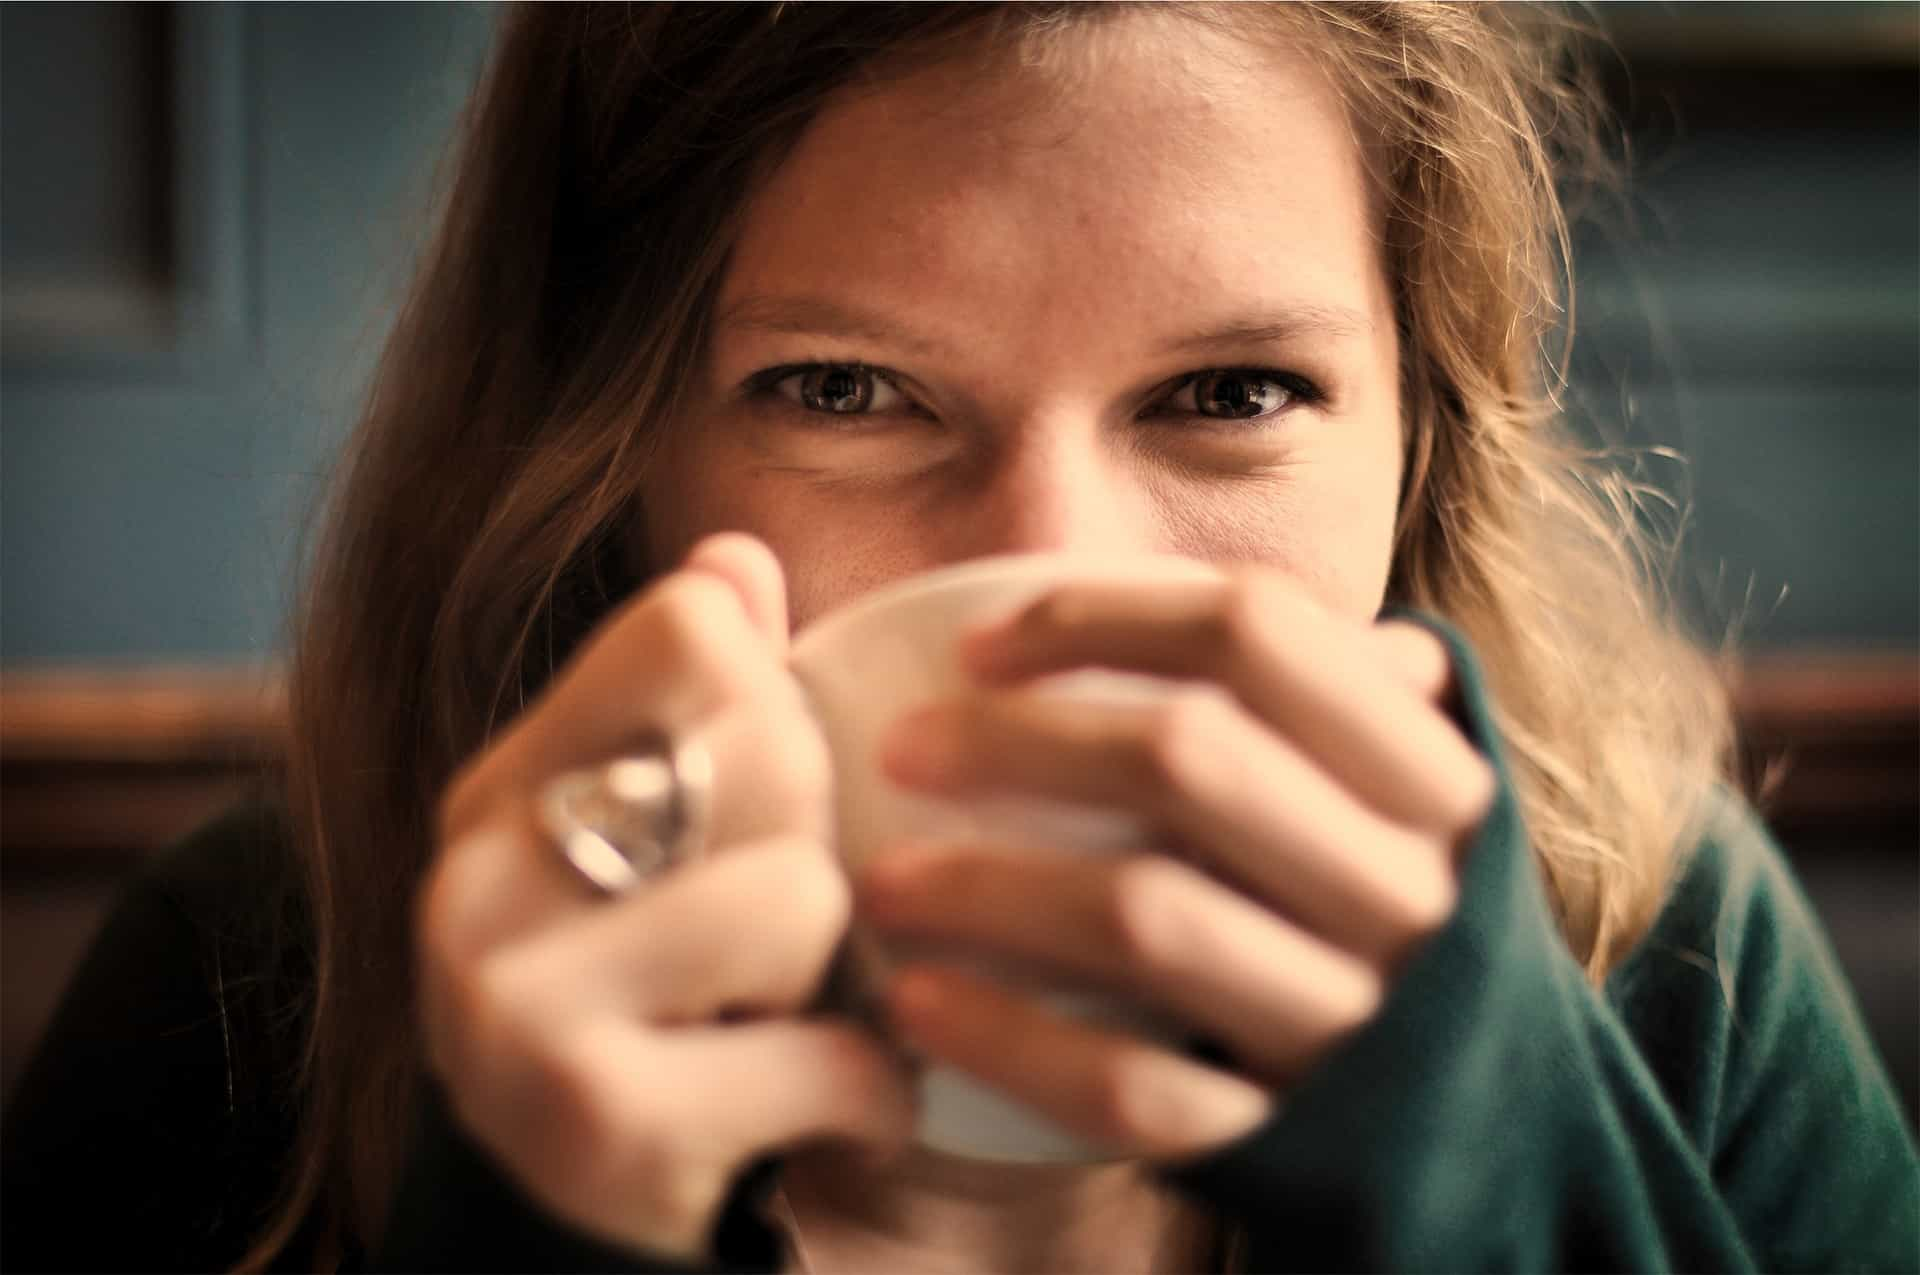 Woman smiling behind a cup of coffee